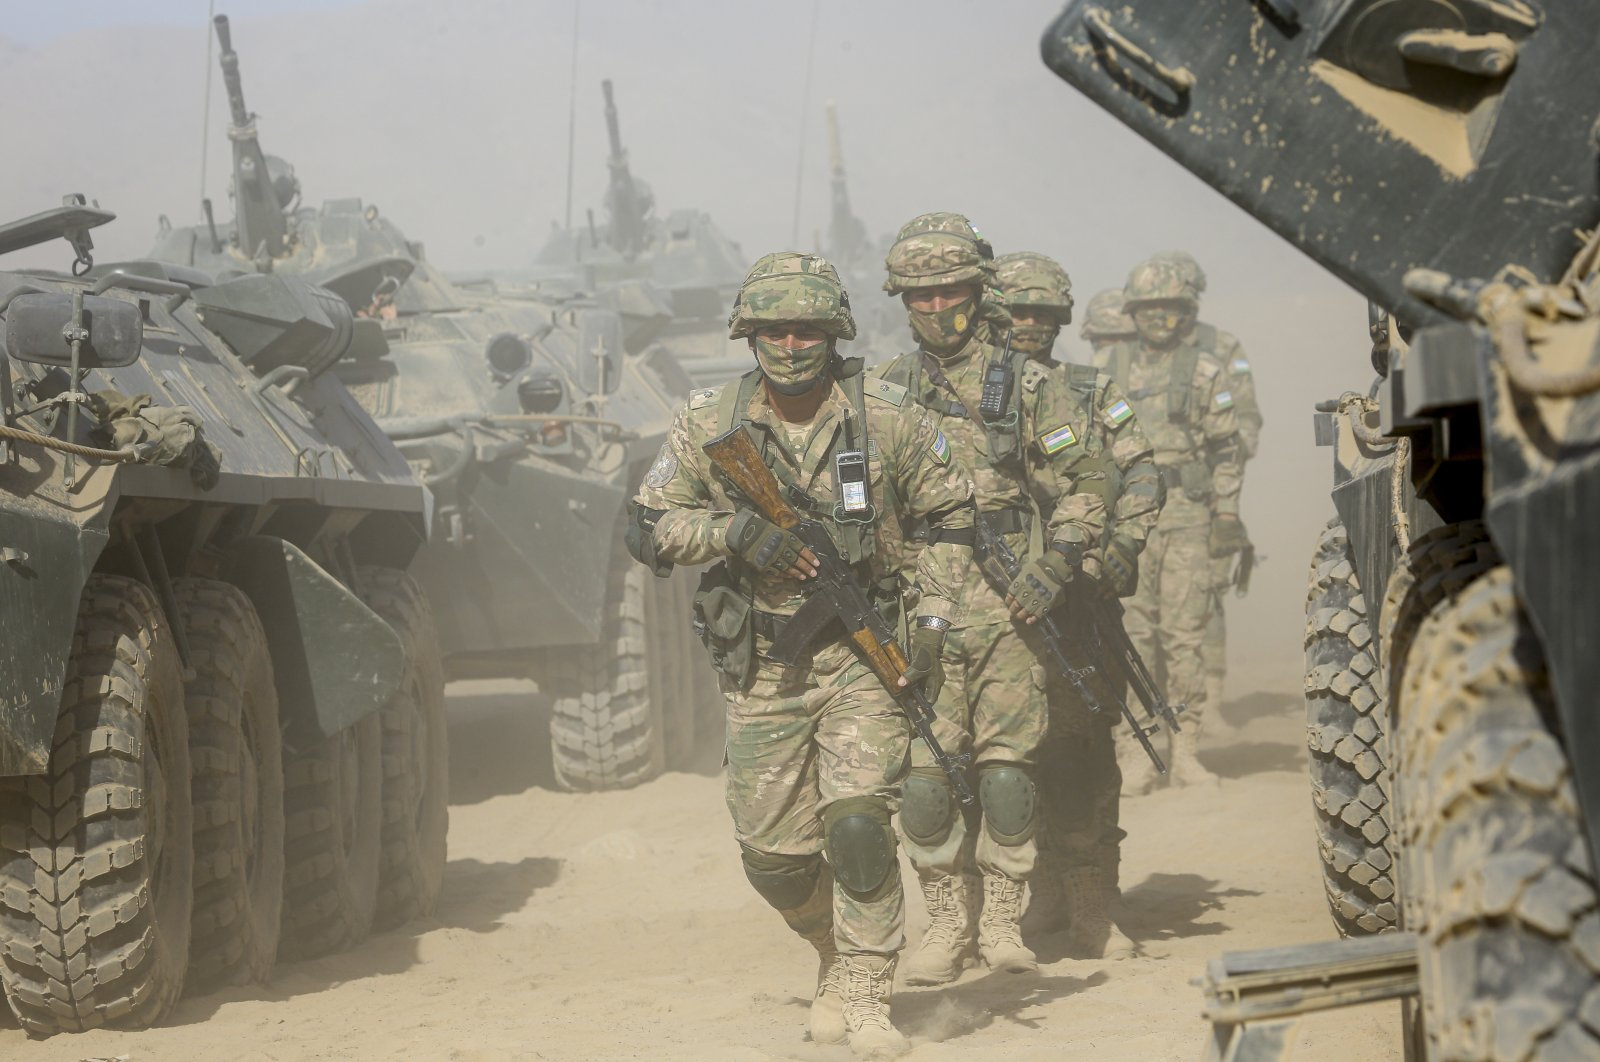 Uzbekistan's troops attend joint military drills together with Russia and Tajikistan at Harb-Maidon firing range about 20 kilometers (about 12 miles) north of the border with Afghanistan, in Tajikistan, Aug. 10, 2021 (AP Photo/Didor Sadulloev, File)